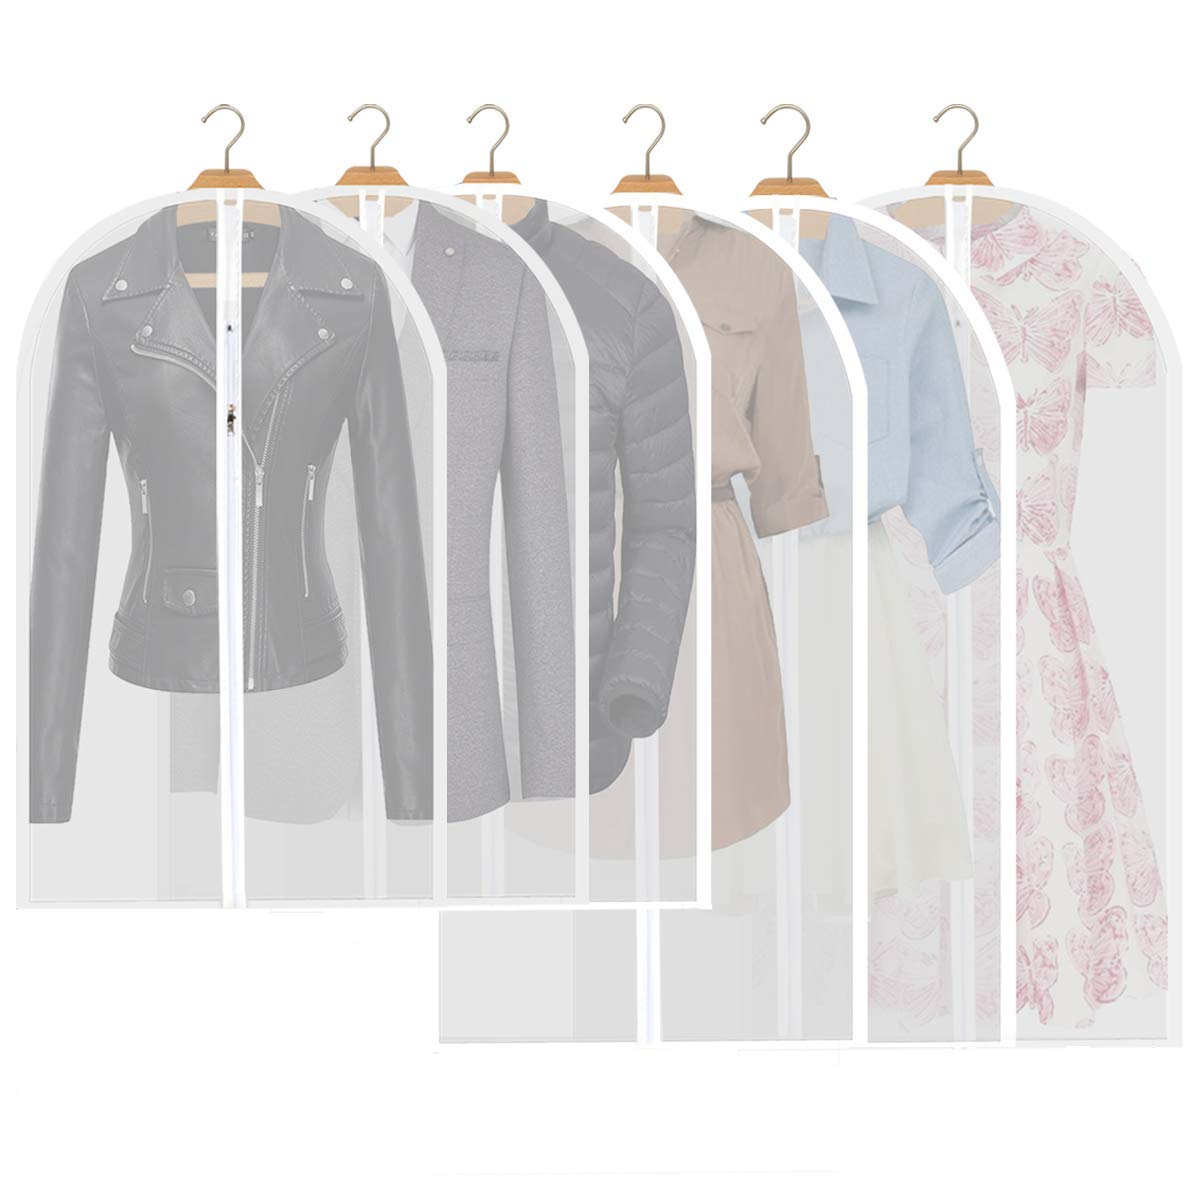 Garment Bag Clear Suit Dress Moth Proof Garment Bags Dust Cover White Breathable Bag with Full Zipper for Clothes Closet Storage Pack of 6 by homebags (Image #1)